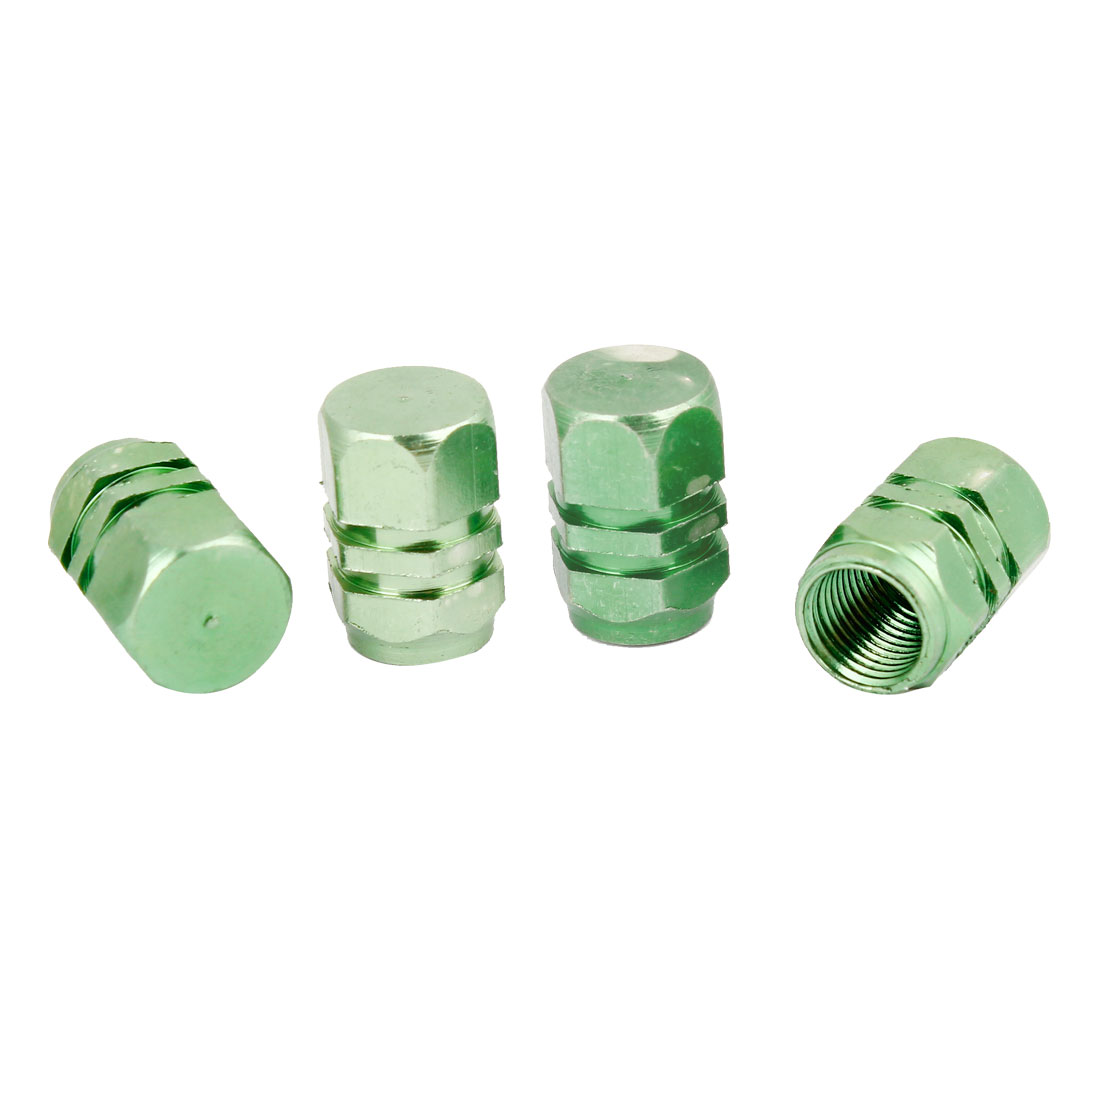 4 Pcs Green Aluminum Alloy Hex Head Tyre Tire Valve Caps Cover for Car